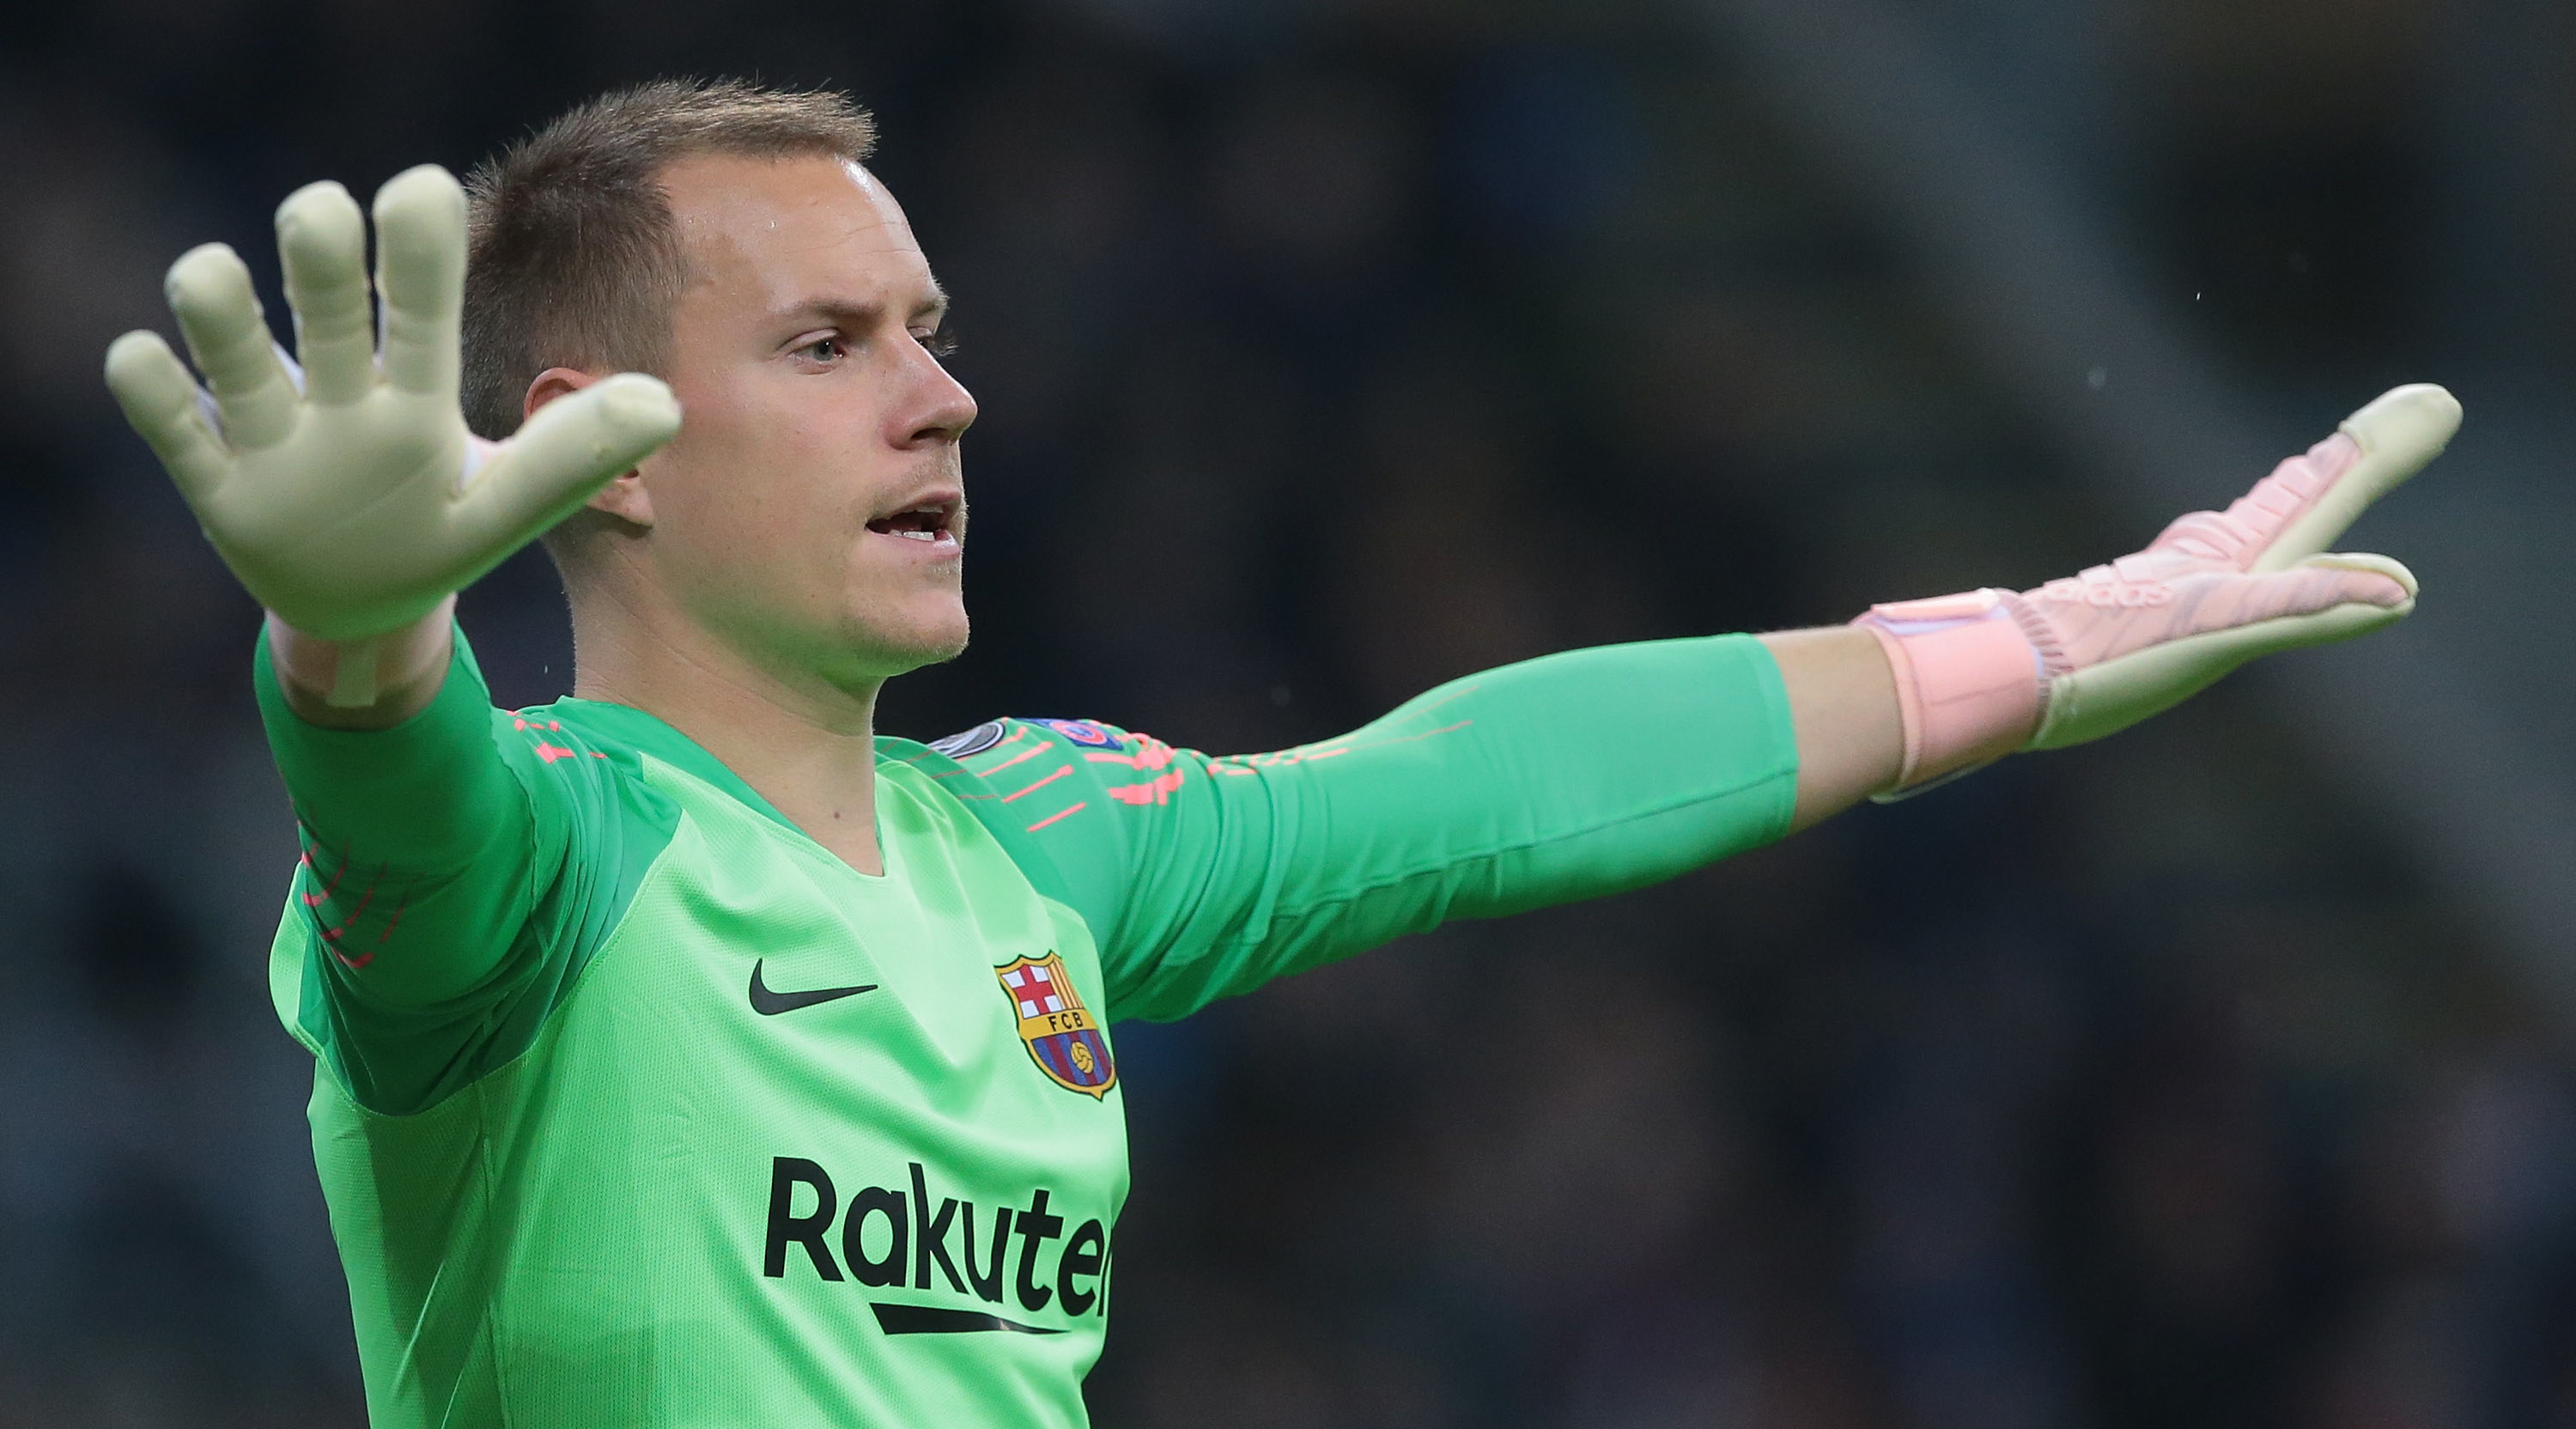 Marc-Andre ter Stegen of FC Barcelona gestures during the Group B match of the UEFA Champions League between FC Internazionale and FC Barcelona at San Siro Stadium on November 6, 2018 in Milan, Italy. (Photo by Emilio Andreoli/Getty Images)